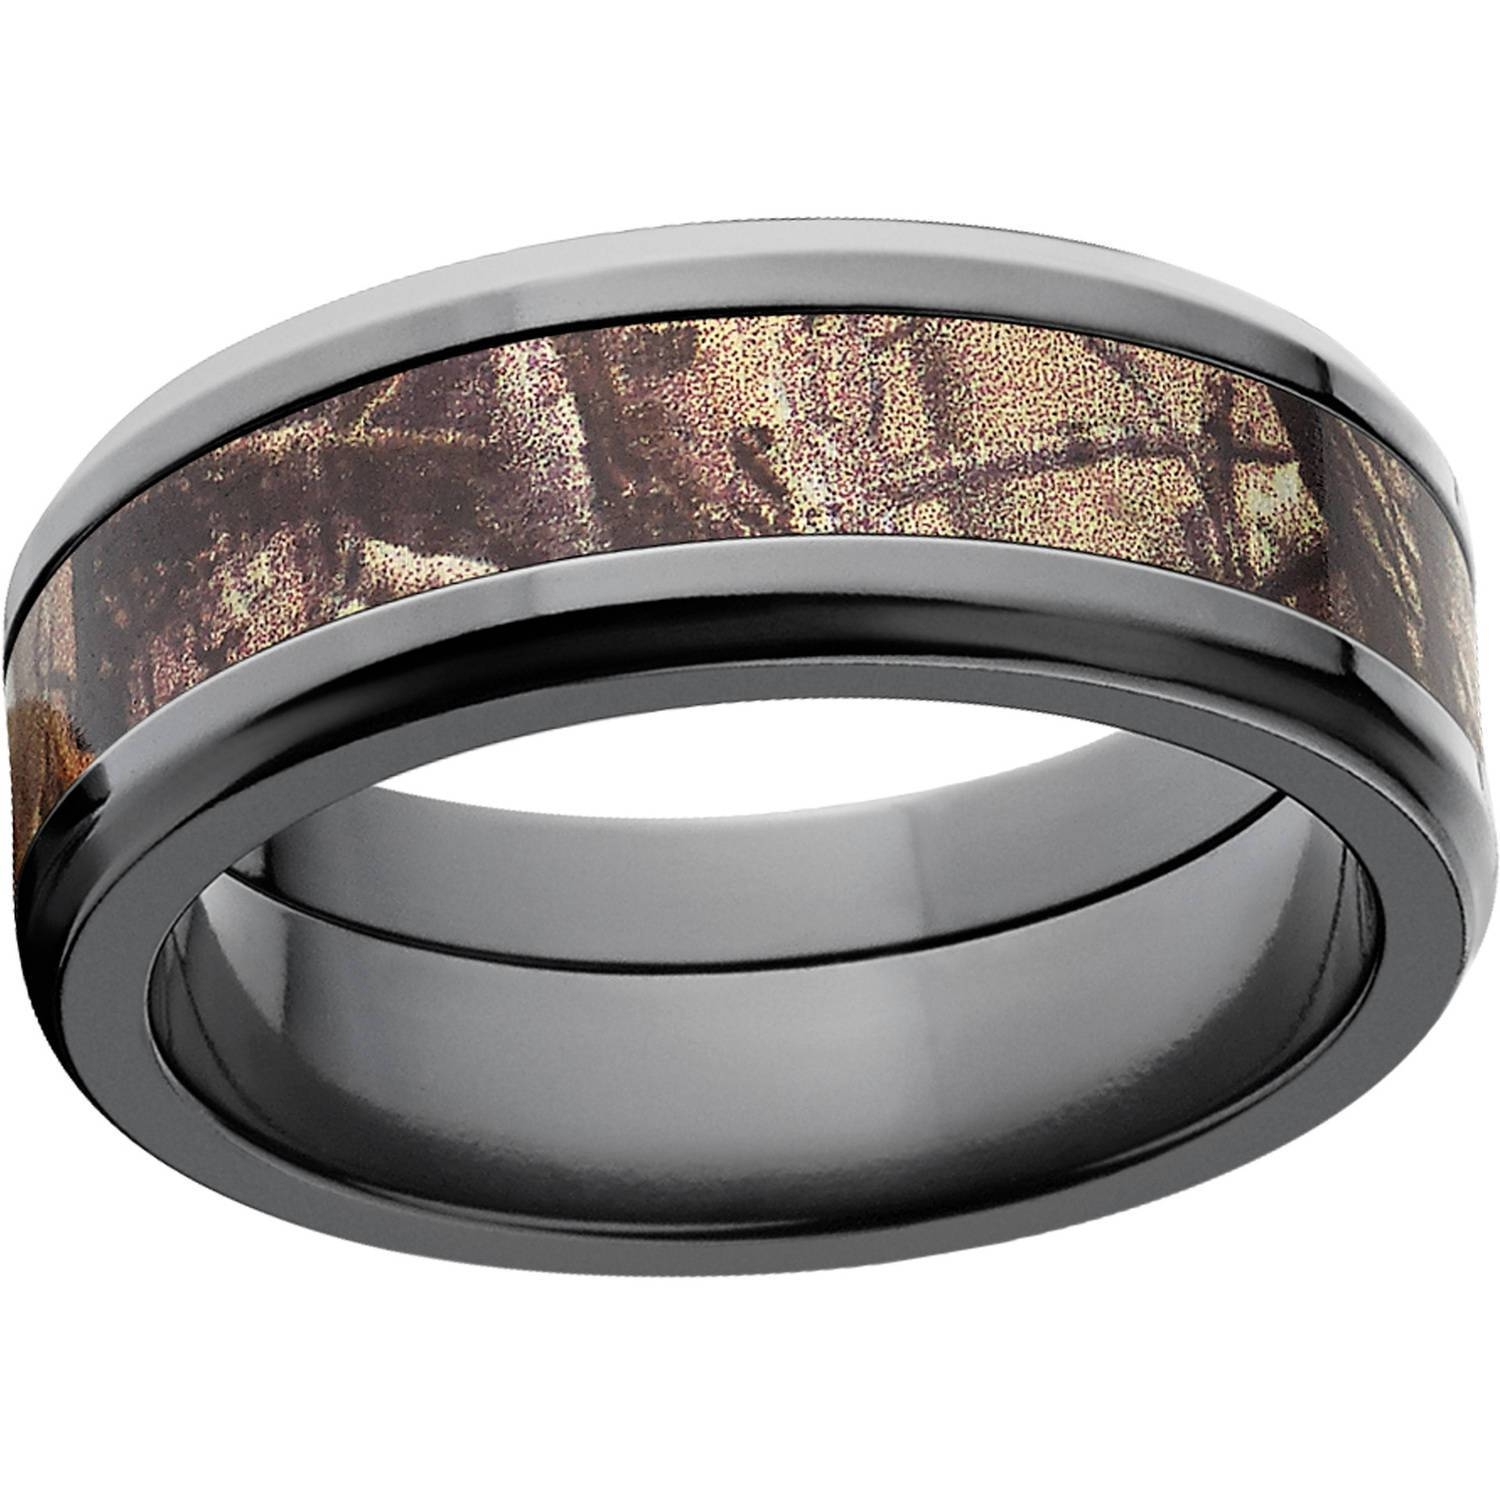 Realtree Ap Men's Camo 8mm Black Zirconium Wedding Band – Walmart Inside Walmart Jewelry Men's Wedding Bands (View 2 of 15)